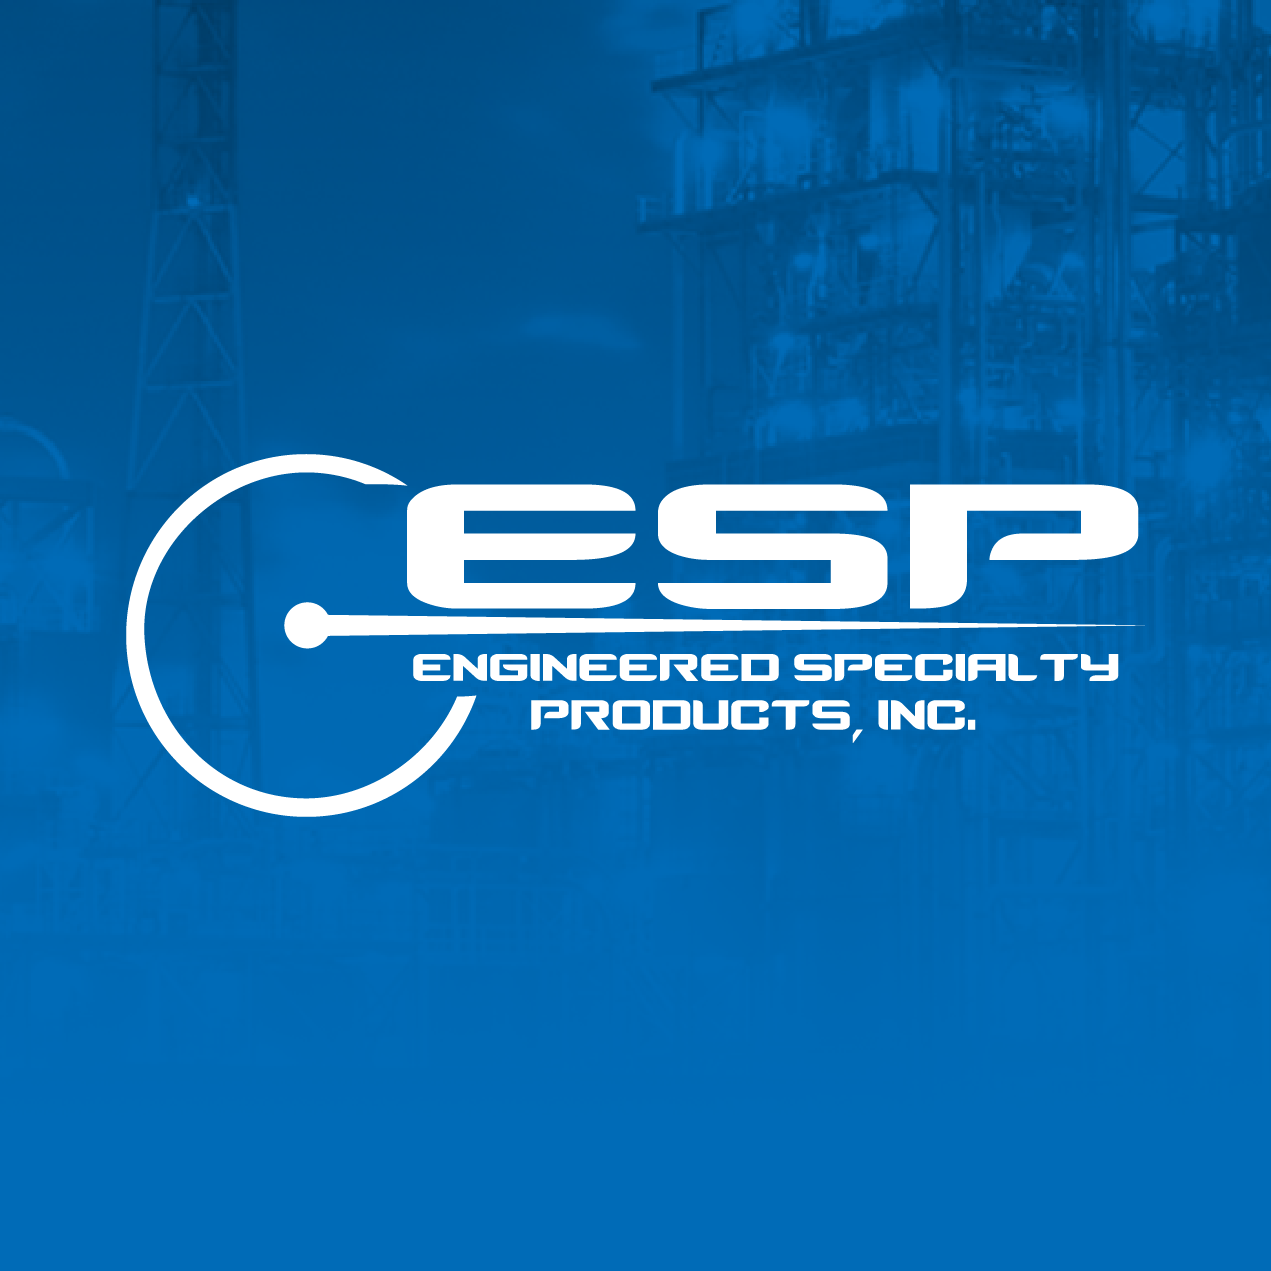 Engineered Specialty Products, Inc.